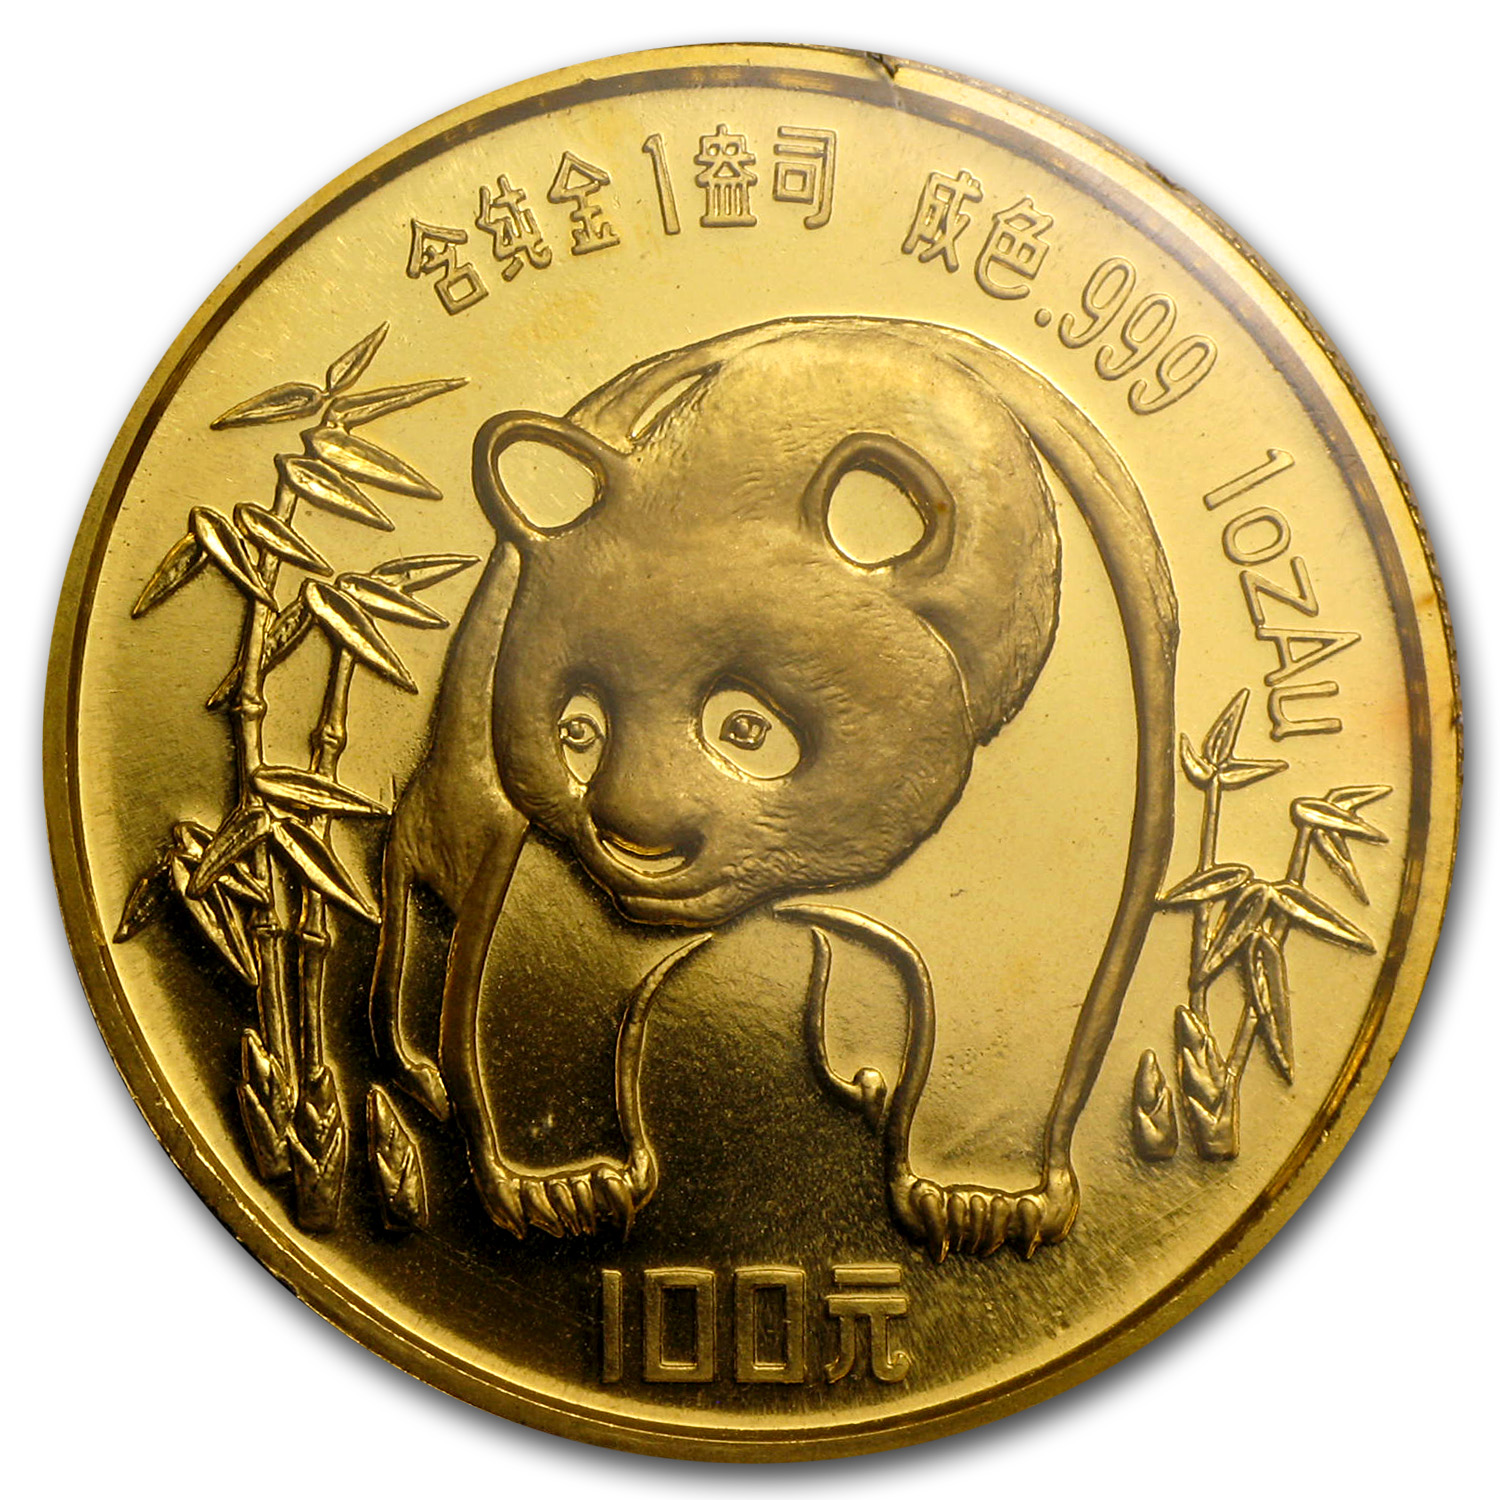 1986 China 1 oz Gold Panda BU (Sealed)